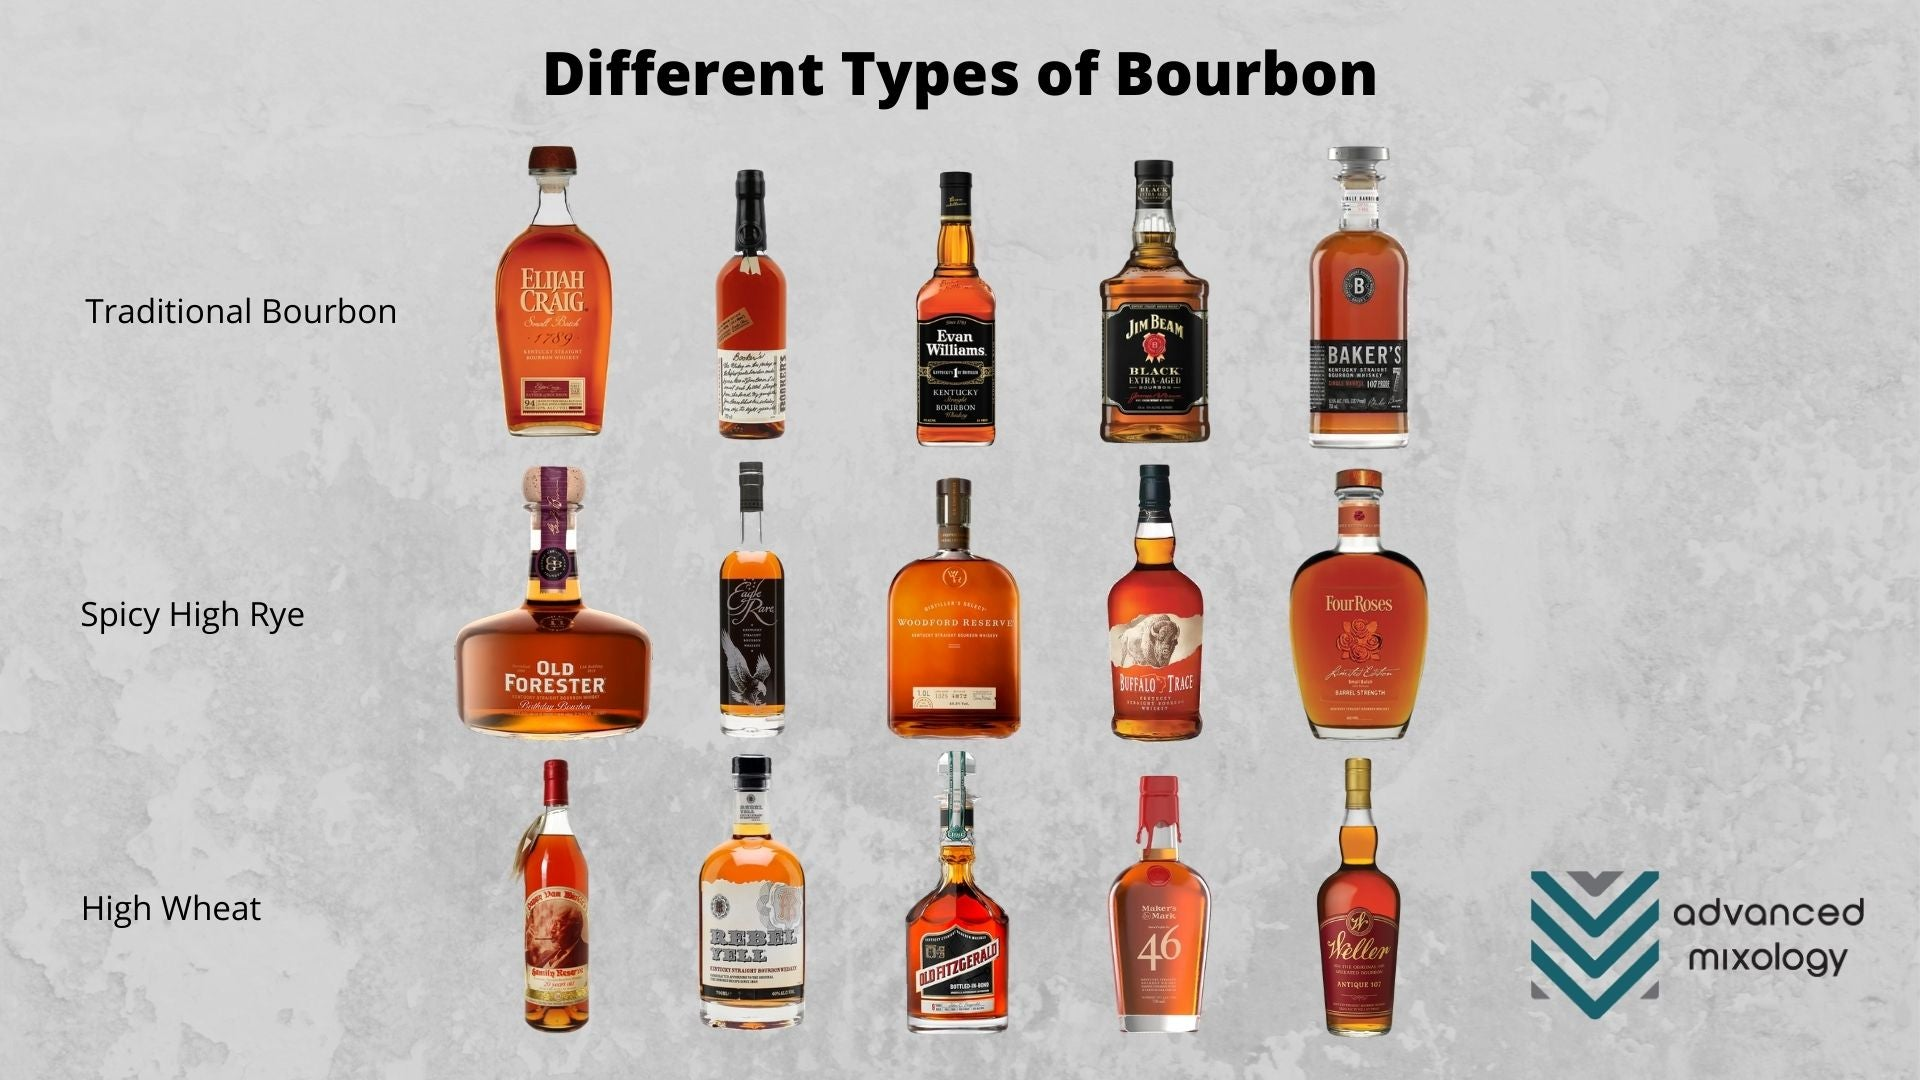 Different Types of Bourbon